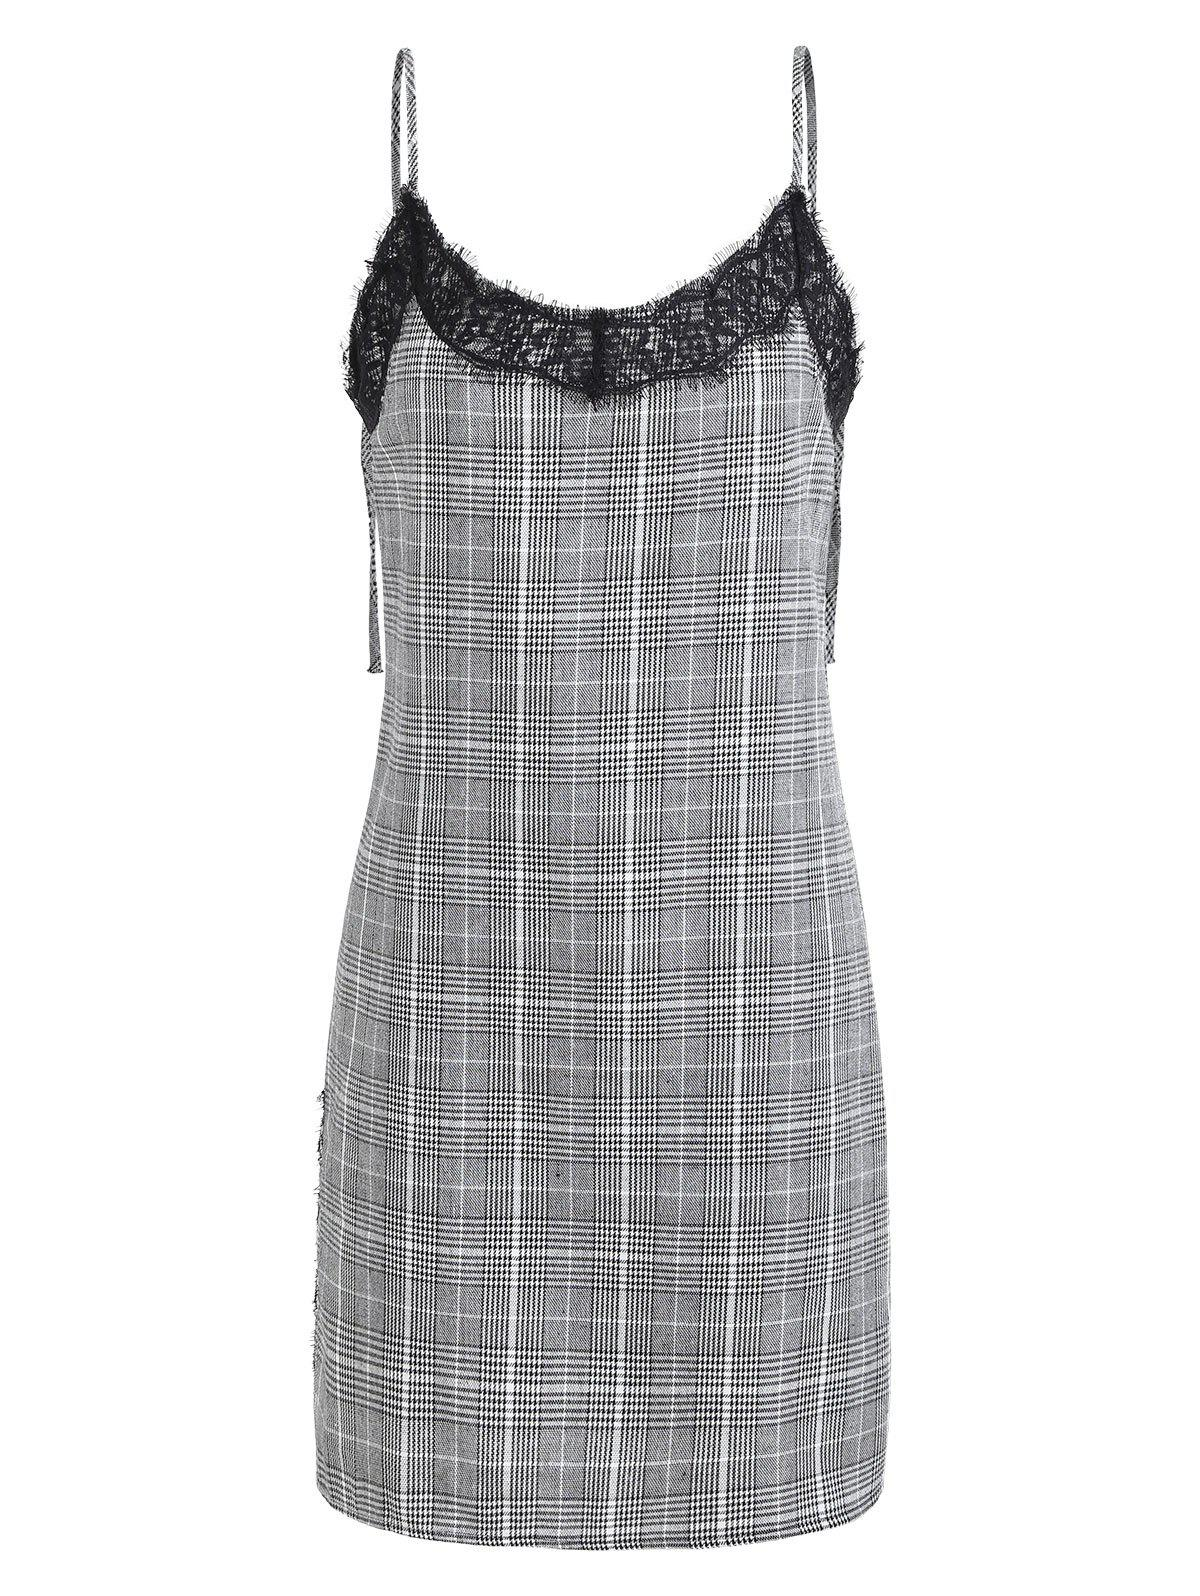 Plaid Backless Mini Cami Dress - GRAY L